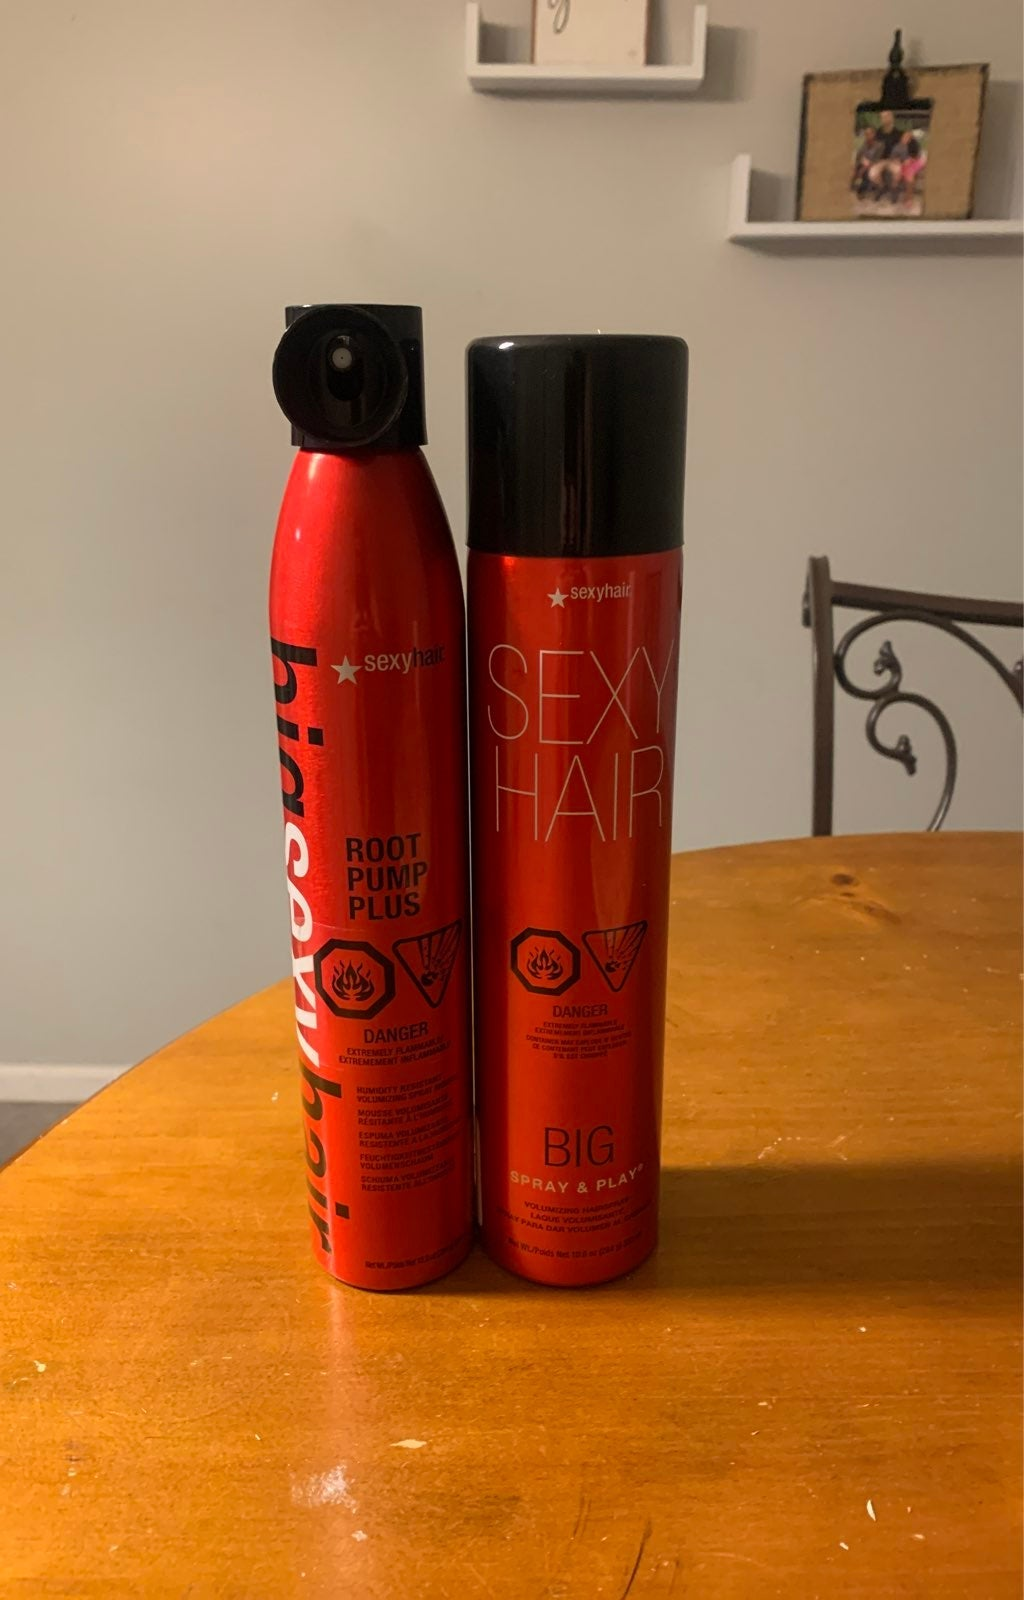 Sexy hair hairspray & mousse